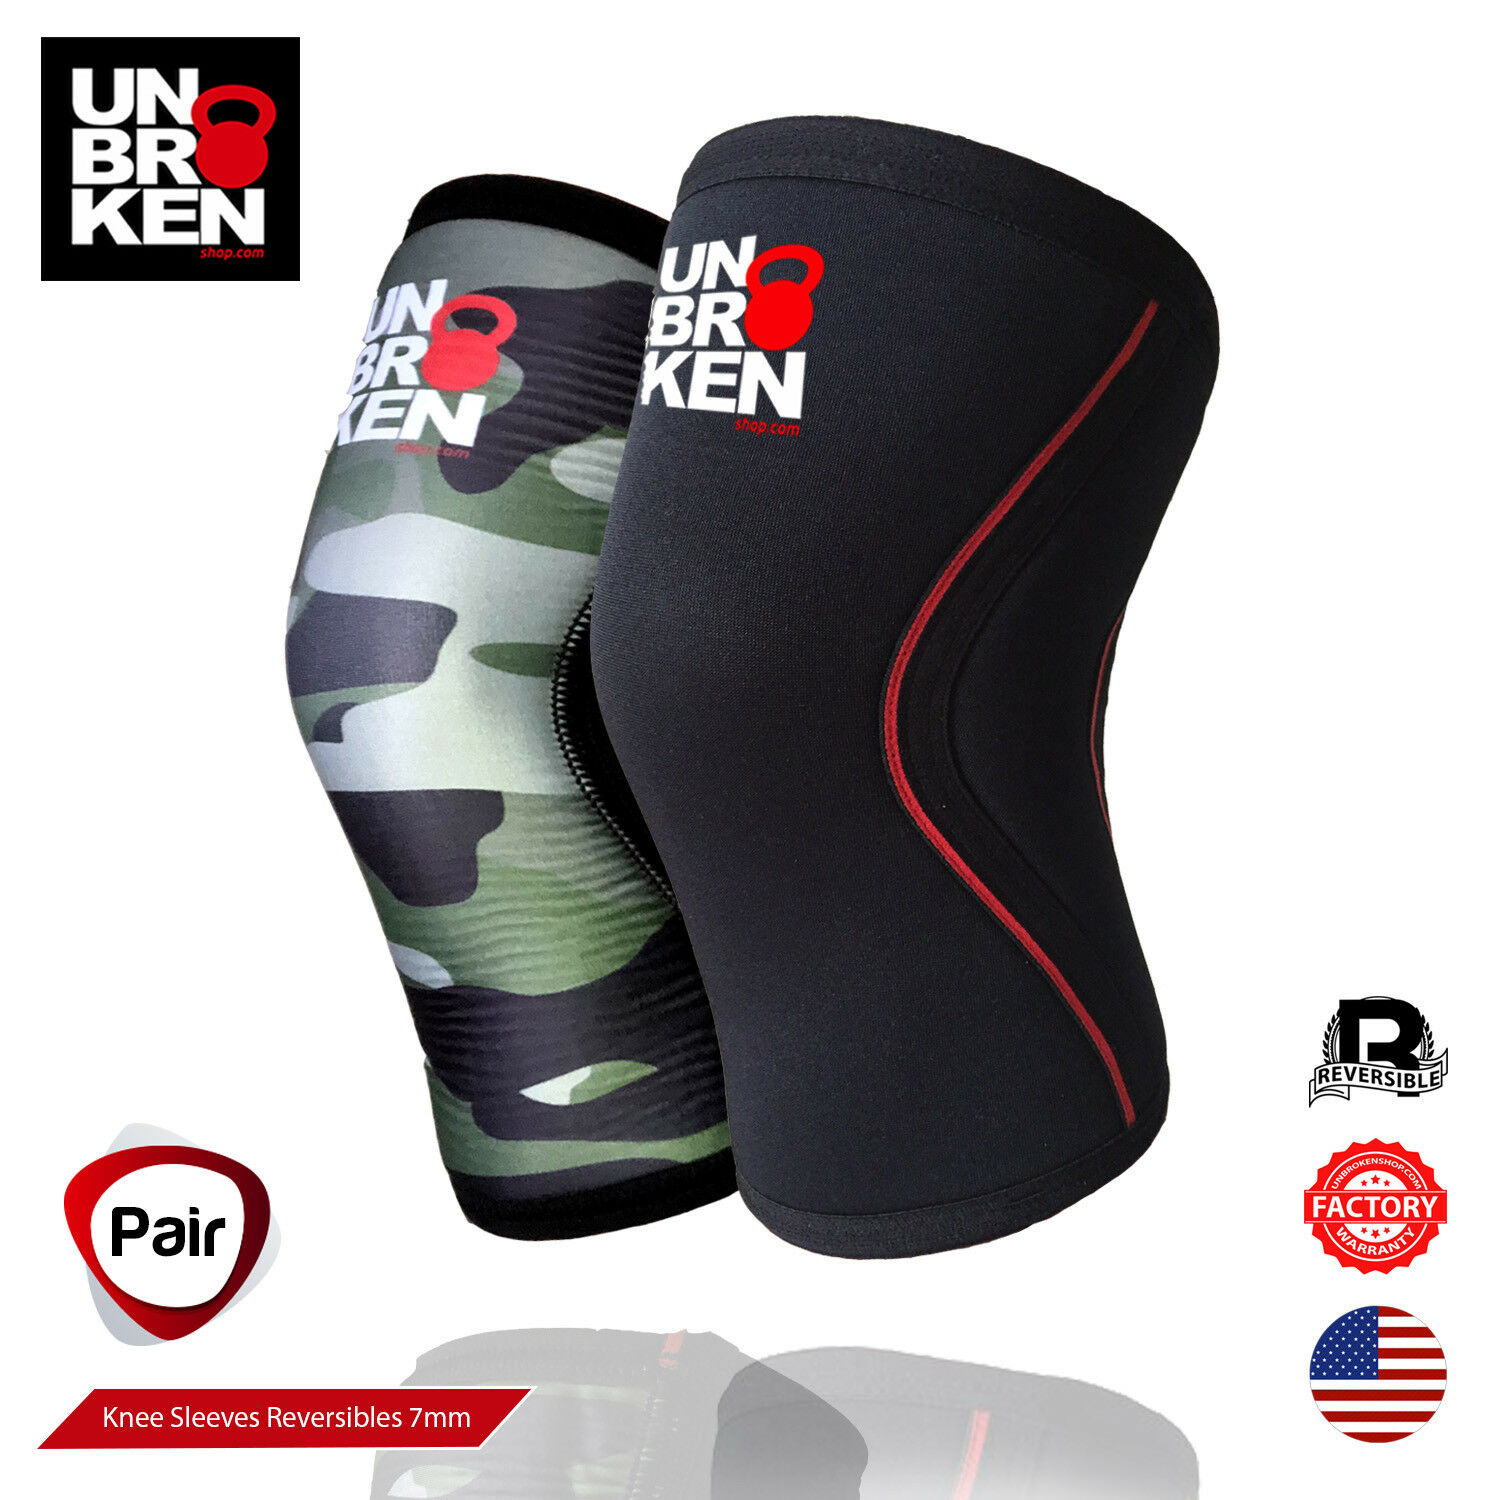 Crossfit knee sleeve kneecap 7mm support men women comp. Rehband size Pair